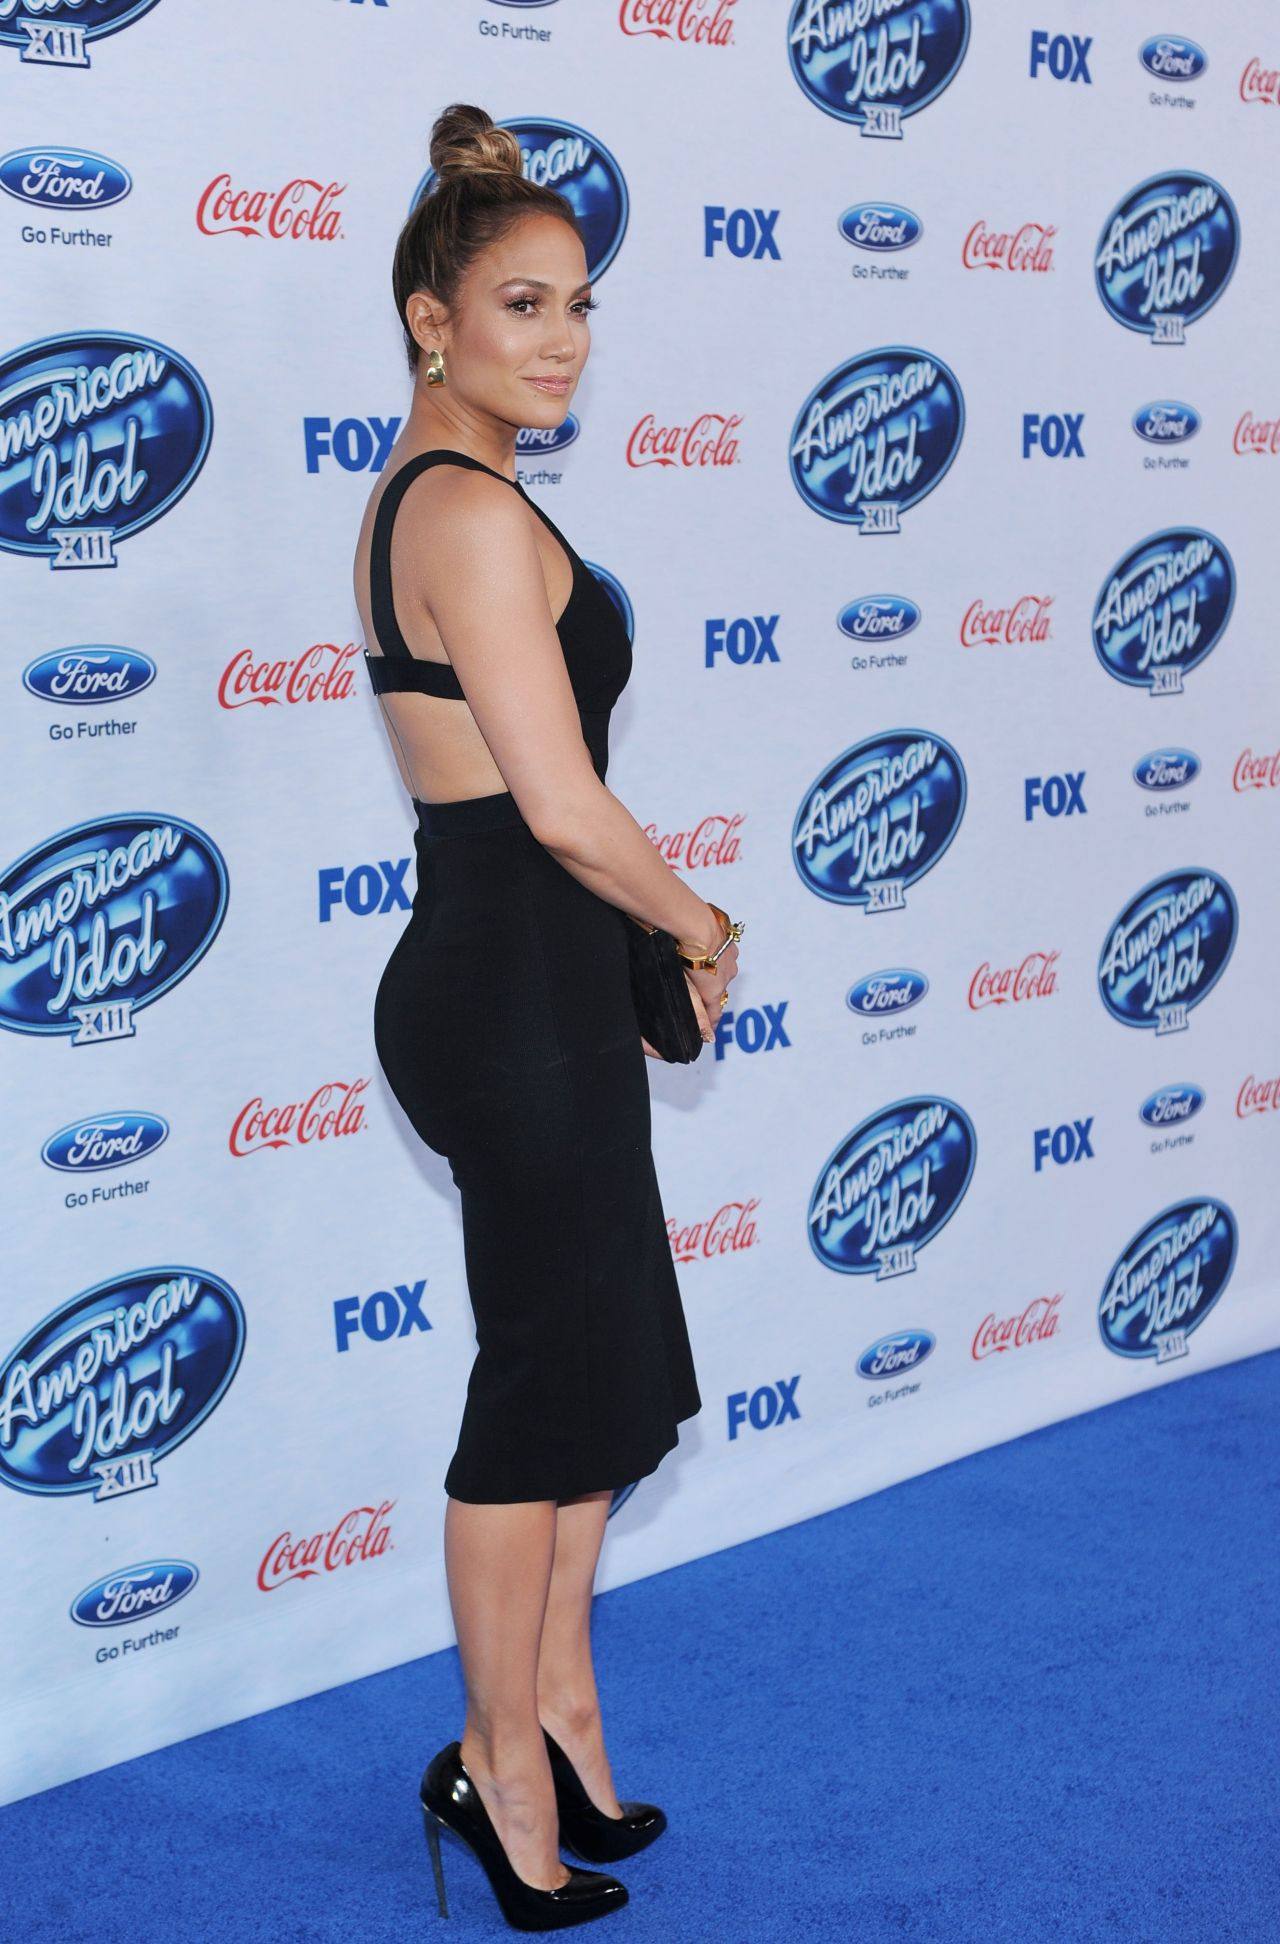 Jennifer Lopez Attends American Idol Finalists Party in West Hollywood - February 2014